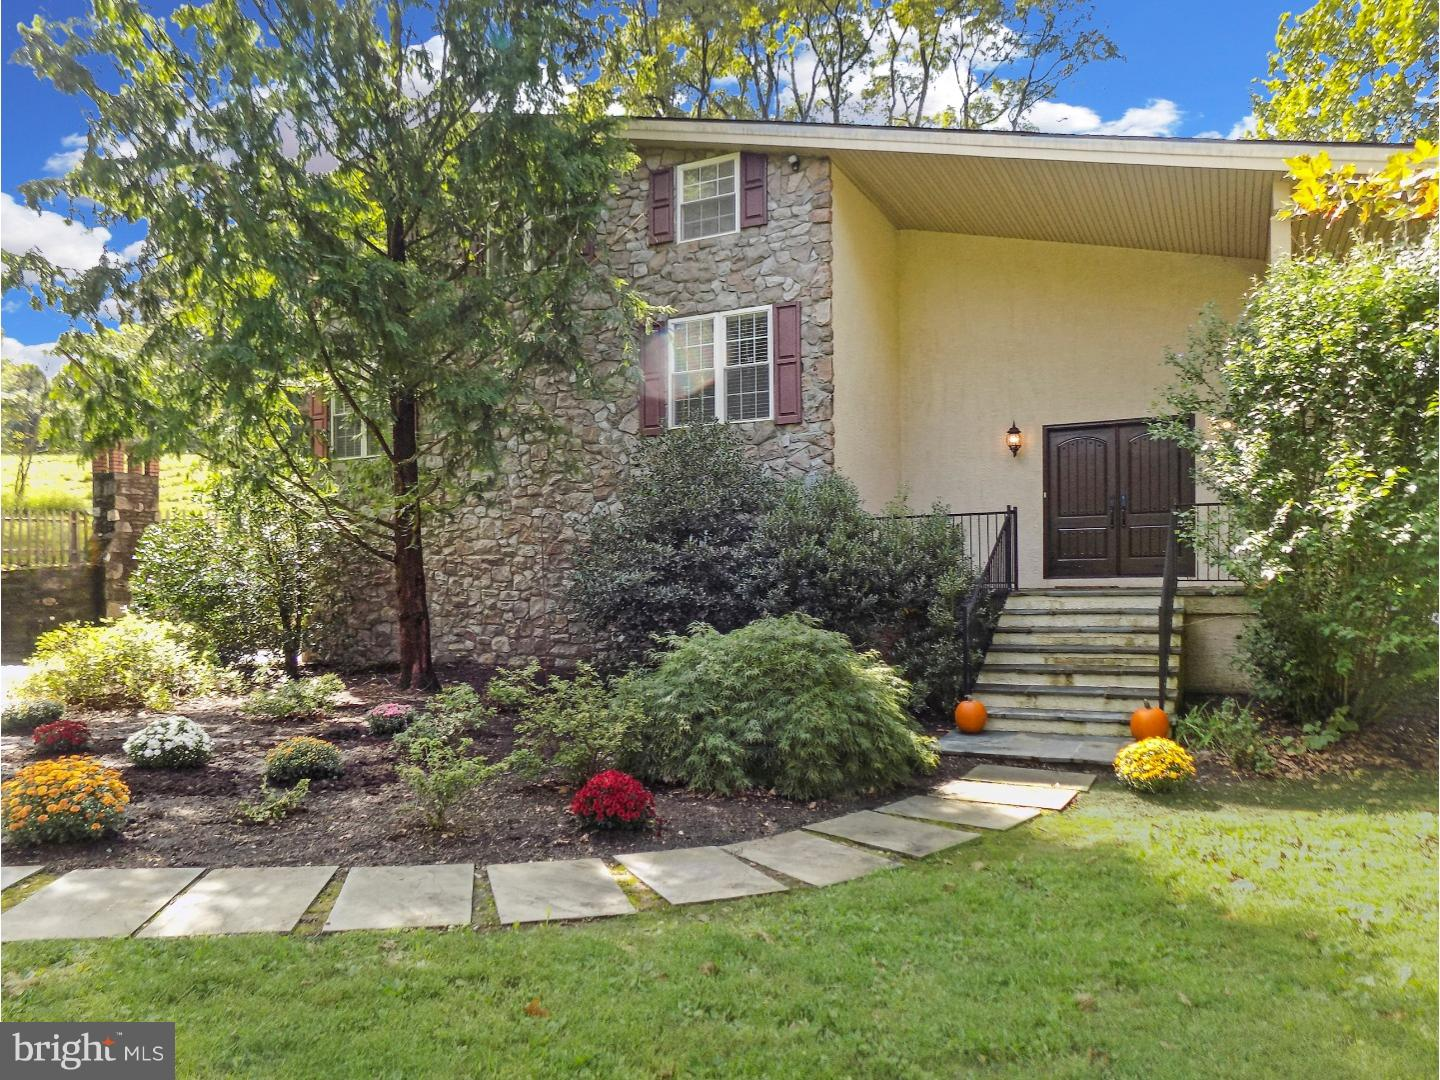 912 GREENE COUNTRIE DRIVE, WEST CHESTER, PA 19380